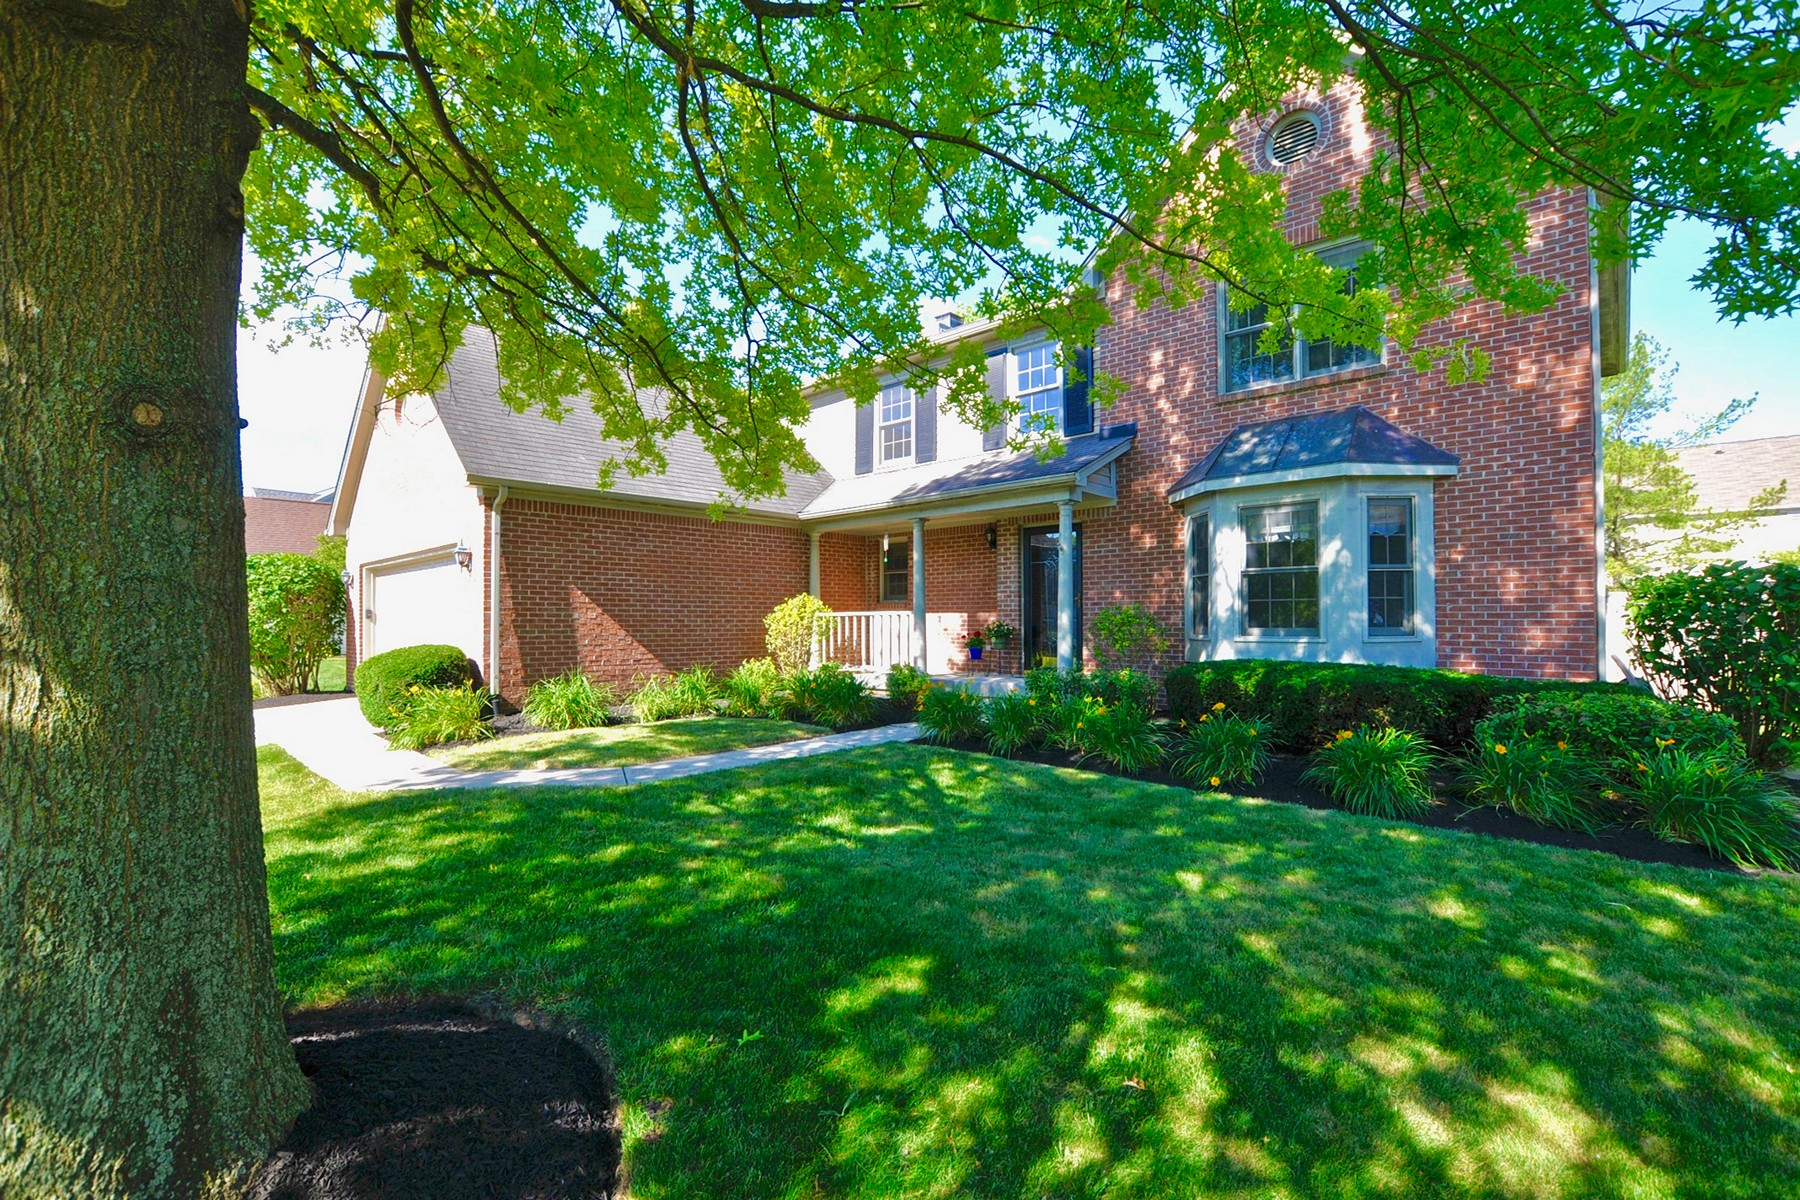 Single Family Home for Sale at Beautiful Two Story Home on Private Lot 14514 Cotswold Lane Carmel, Indiana 46033 United States